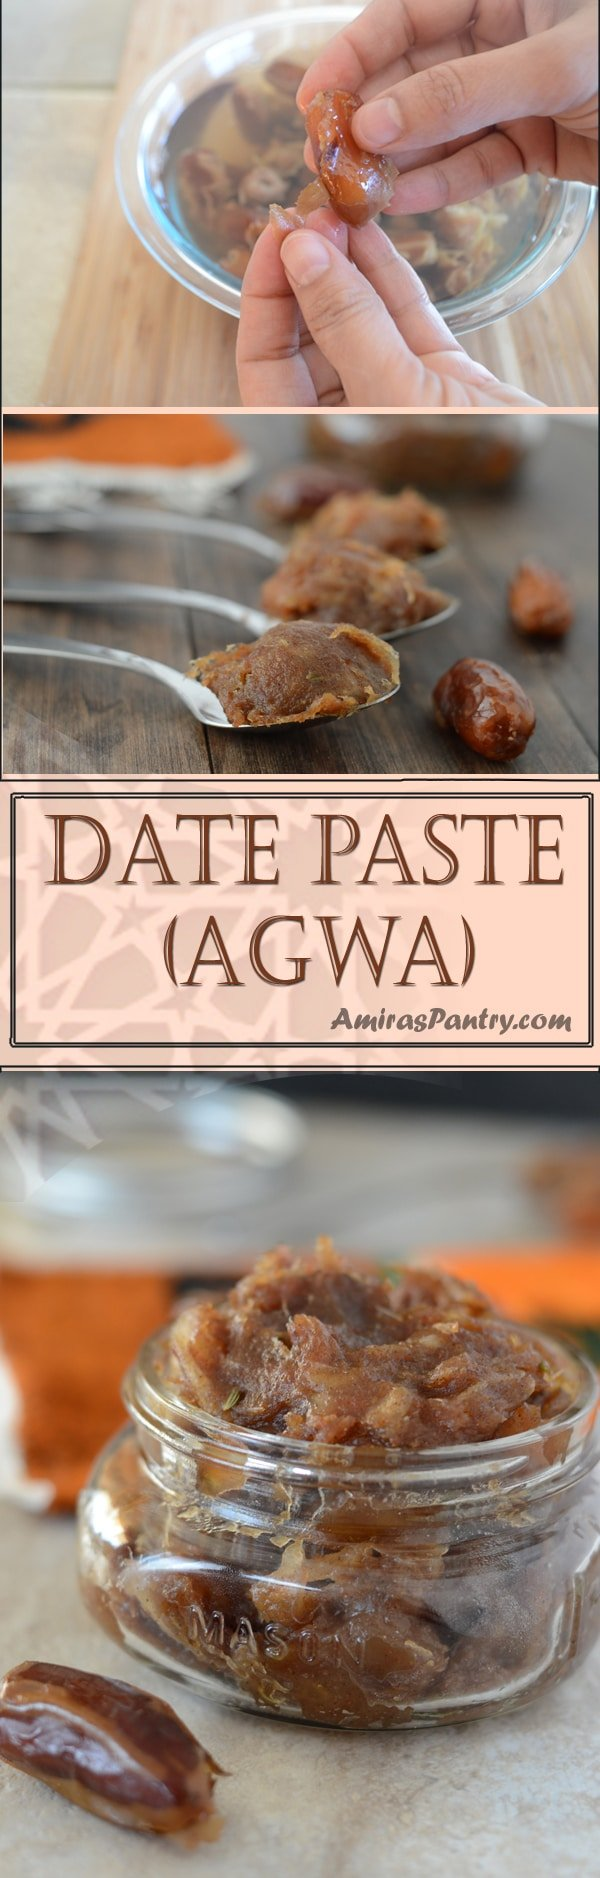 Agwa is the Middle Eastern paste used to stuff pastries and cookies . It is not the kind of date paste that you will use to sweeten your drinks and recipes. This is a thick paste used to stuff baked goods.